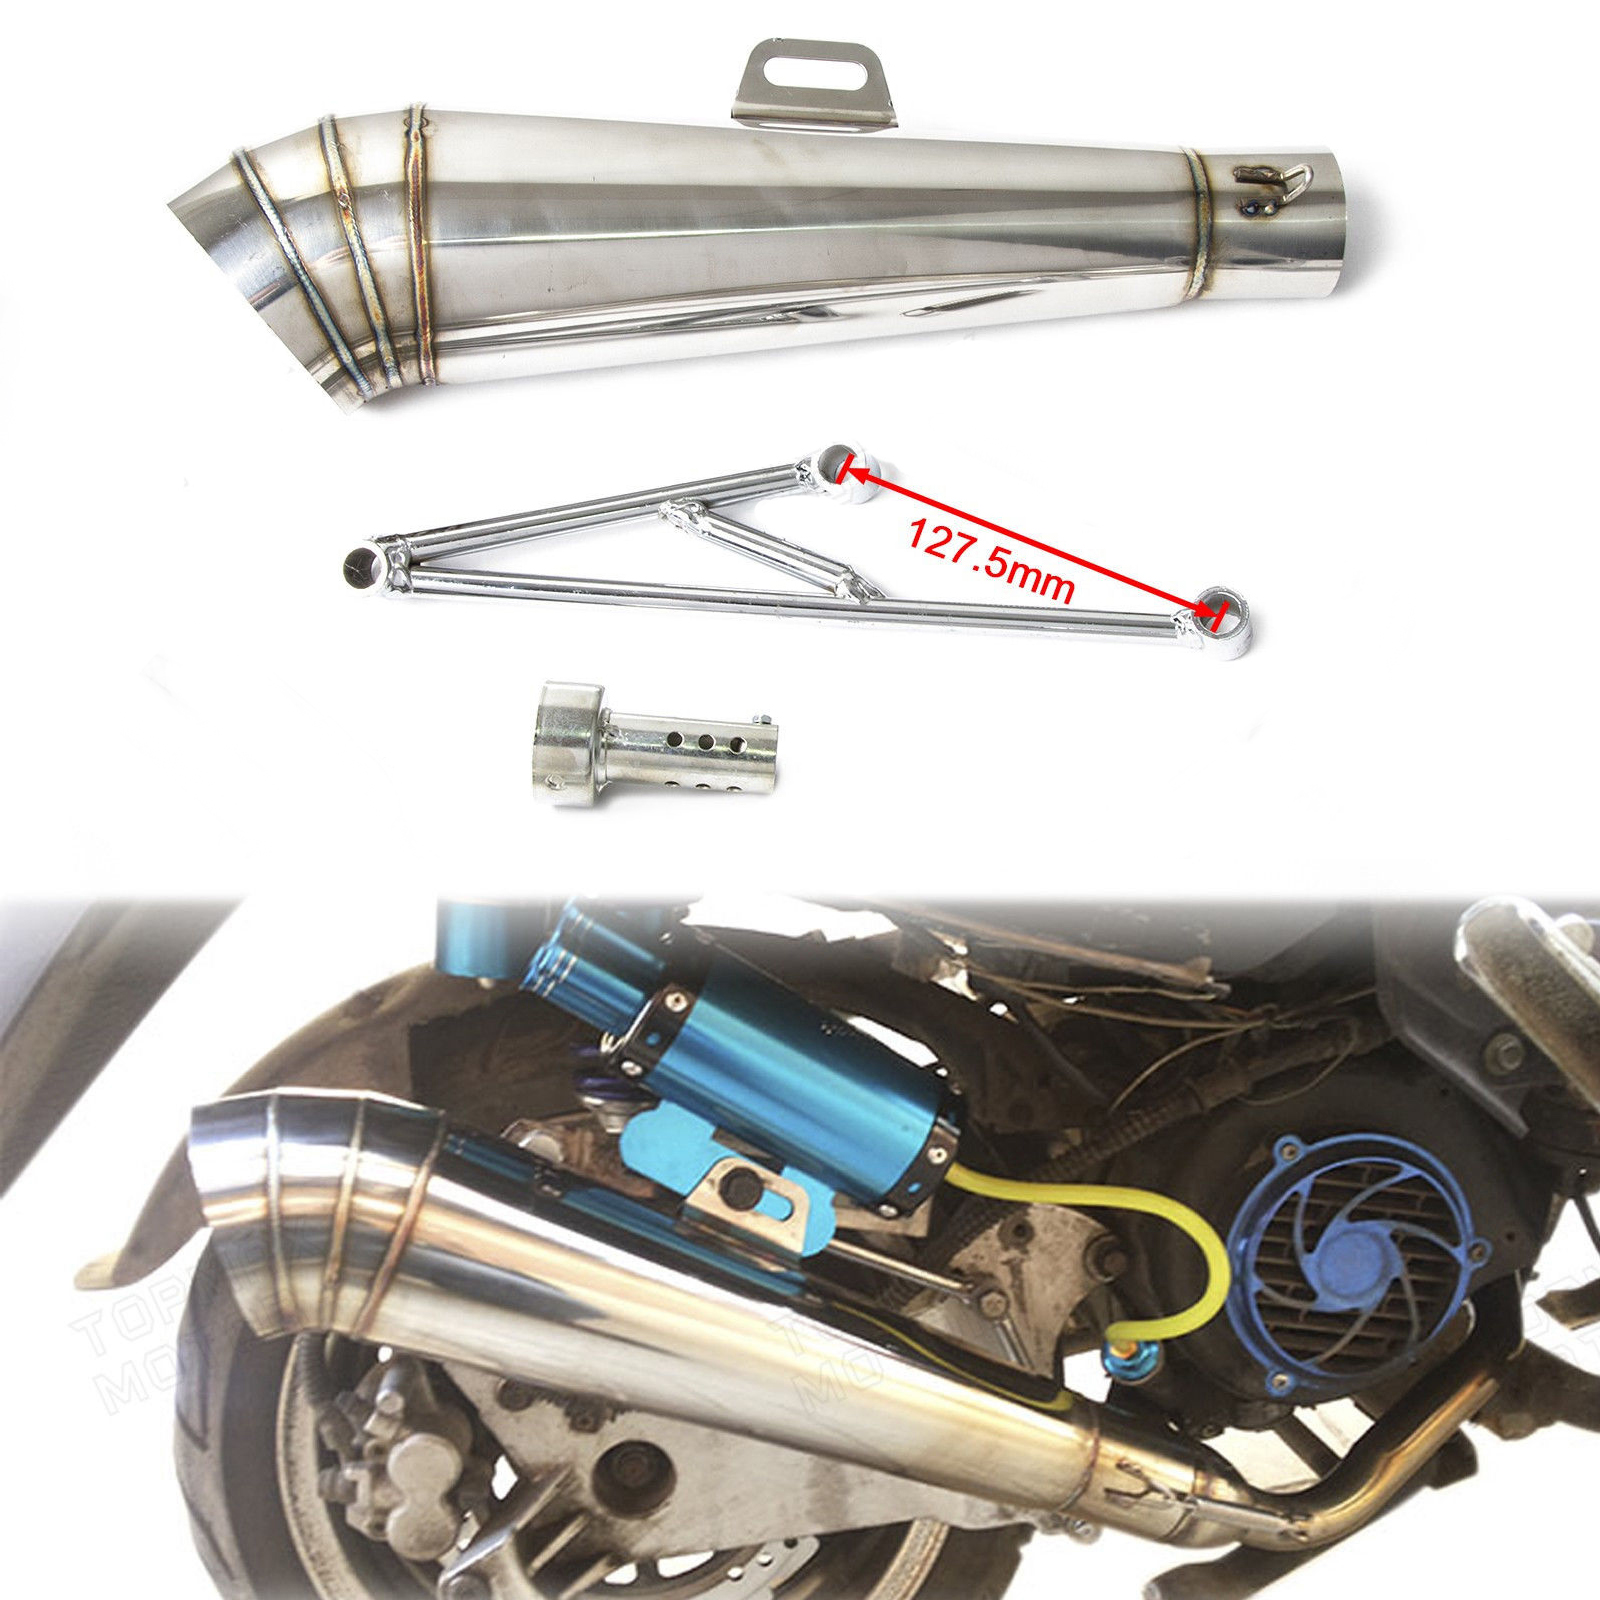 <font><b>Exhaust</b></font> Muffler <font><b>System</b></font> header exhuast pipe GP style muffler For Honda Ruckus / Zoomer / GY6 125cc or <font><b>150cc</b></font> Scooters image